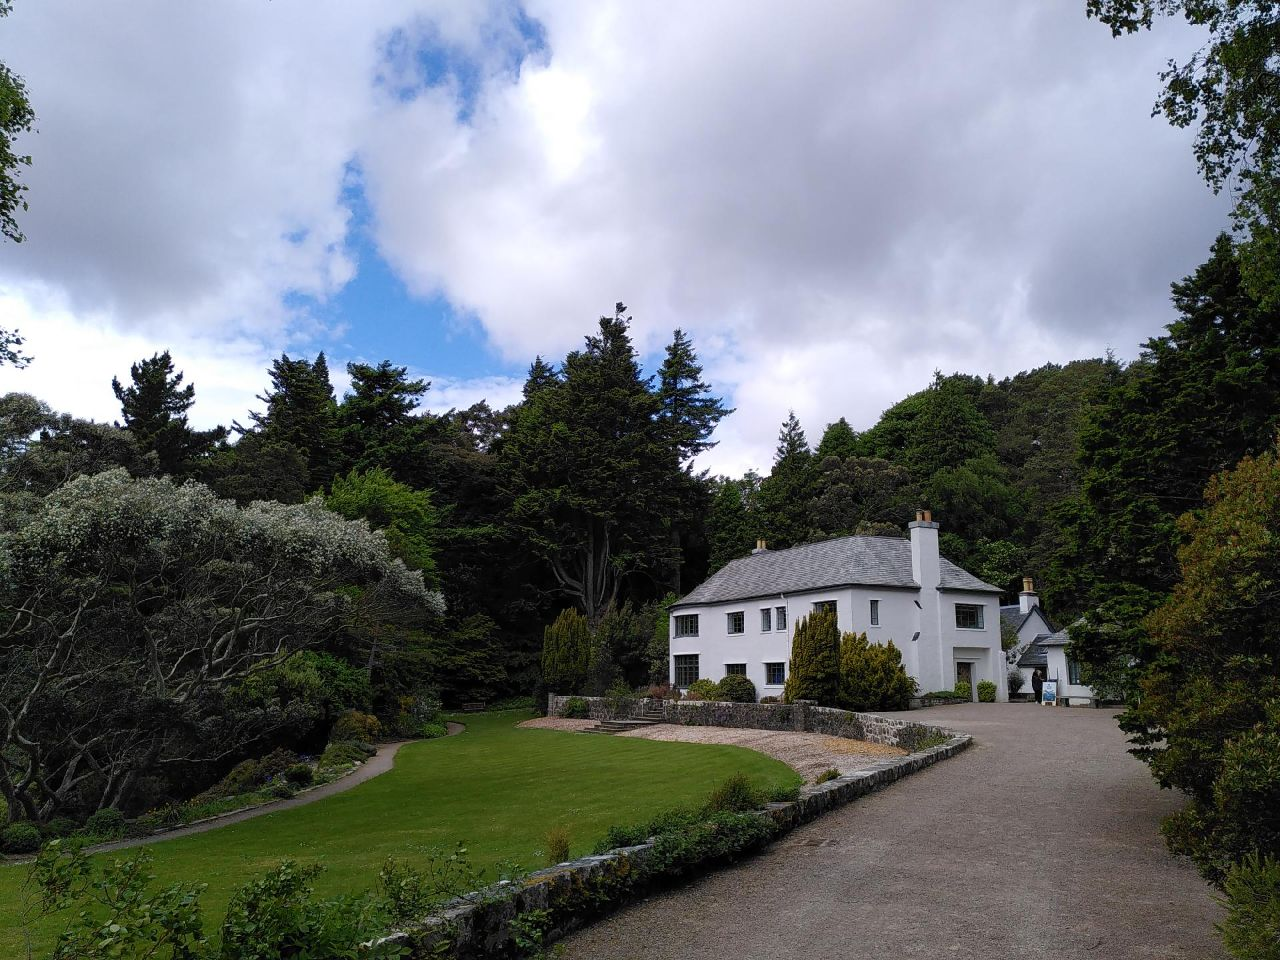 A large, rectangular, white house with steeply slanted slate roof and chimneys book-ending the building. Large green lawn curves across the left of the image and a fine gravel path leads to the house. Tall trees in full leaf surround the building and garden. The sky is overcast.